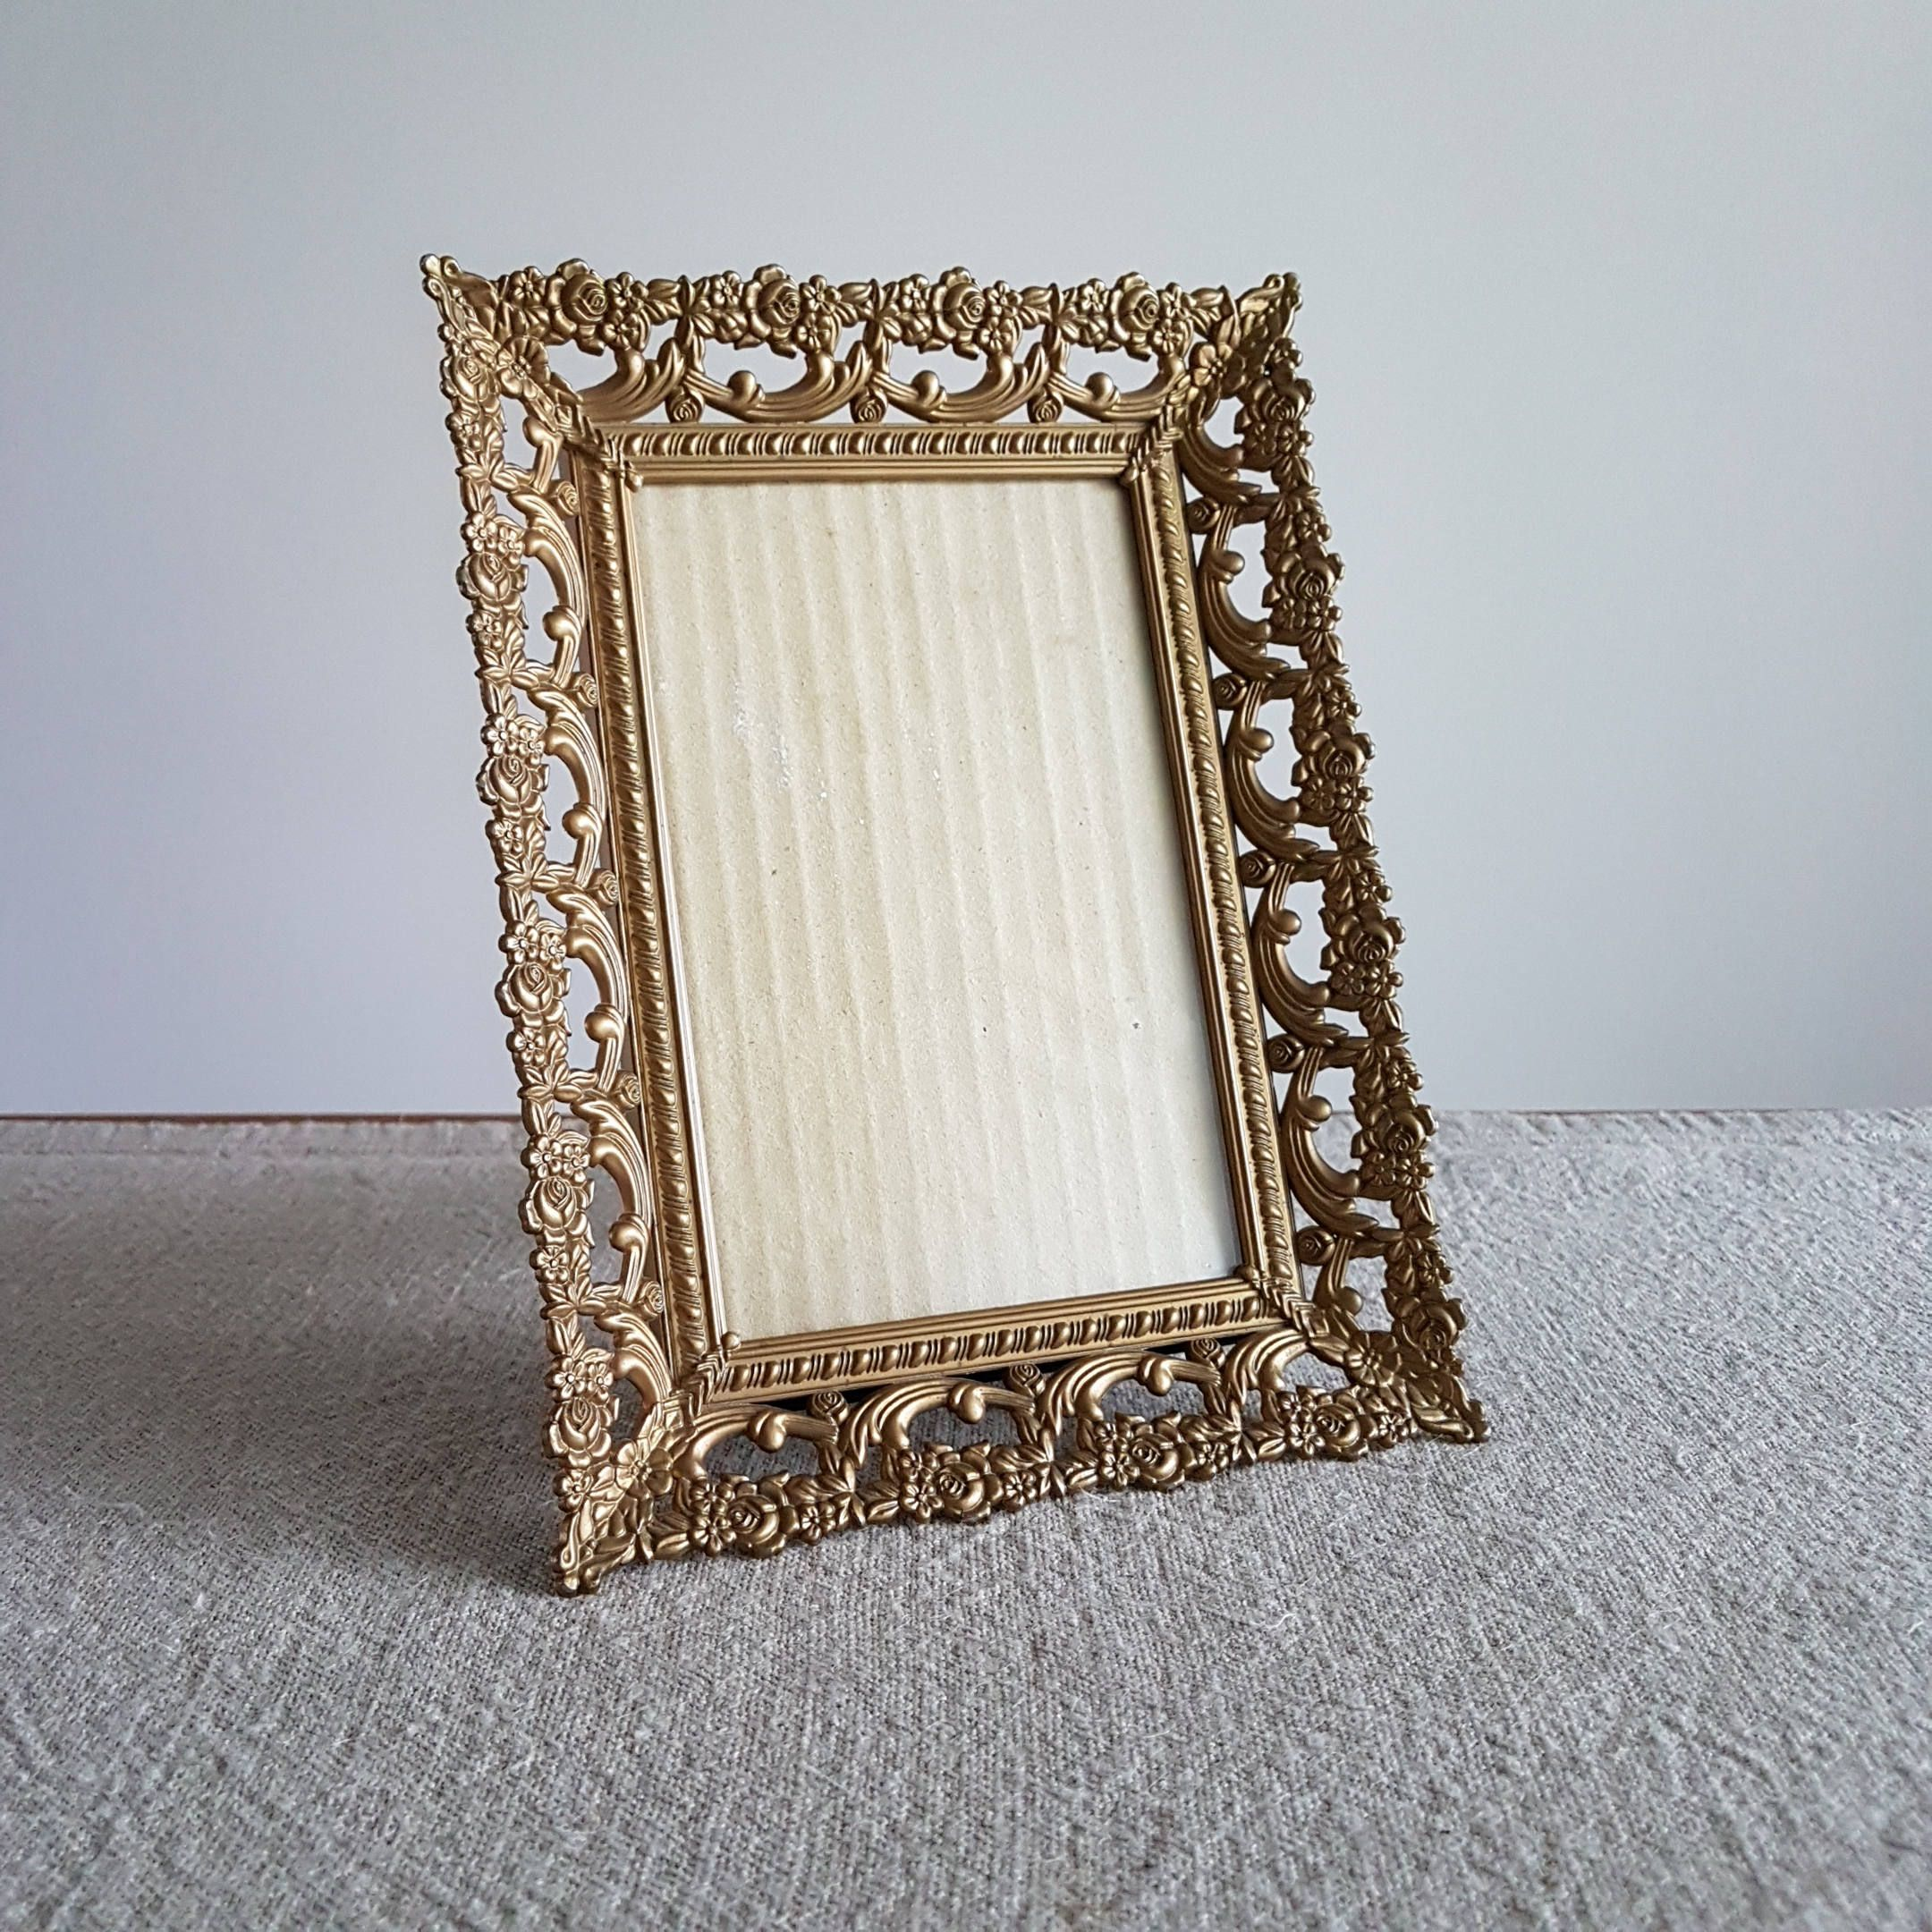 4 x 6 ornate gold plastic picture frame convex glass 4 x 6 ornate gold plastic picture frame convex glass hollywood jeuxipadfo Images